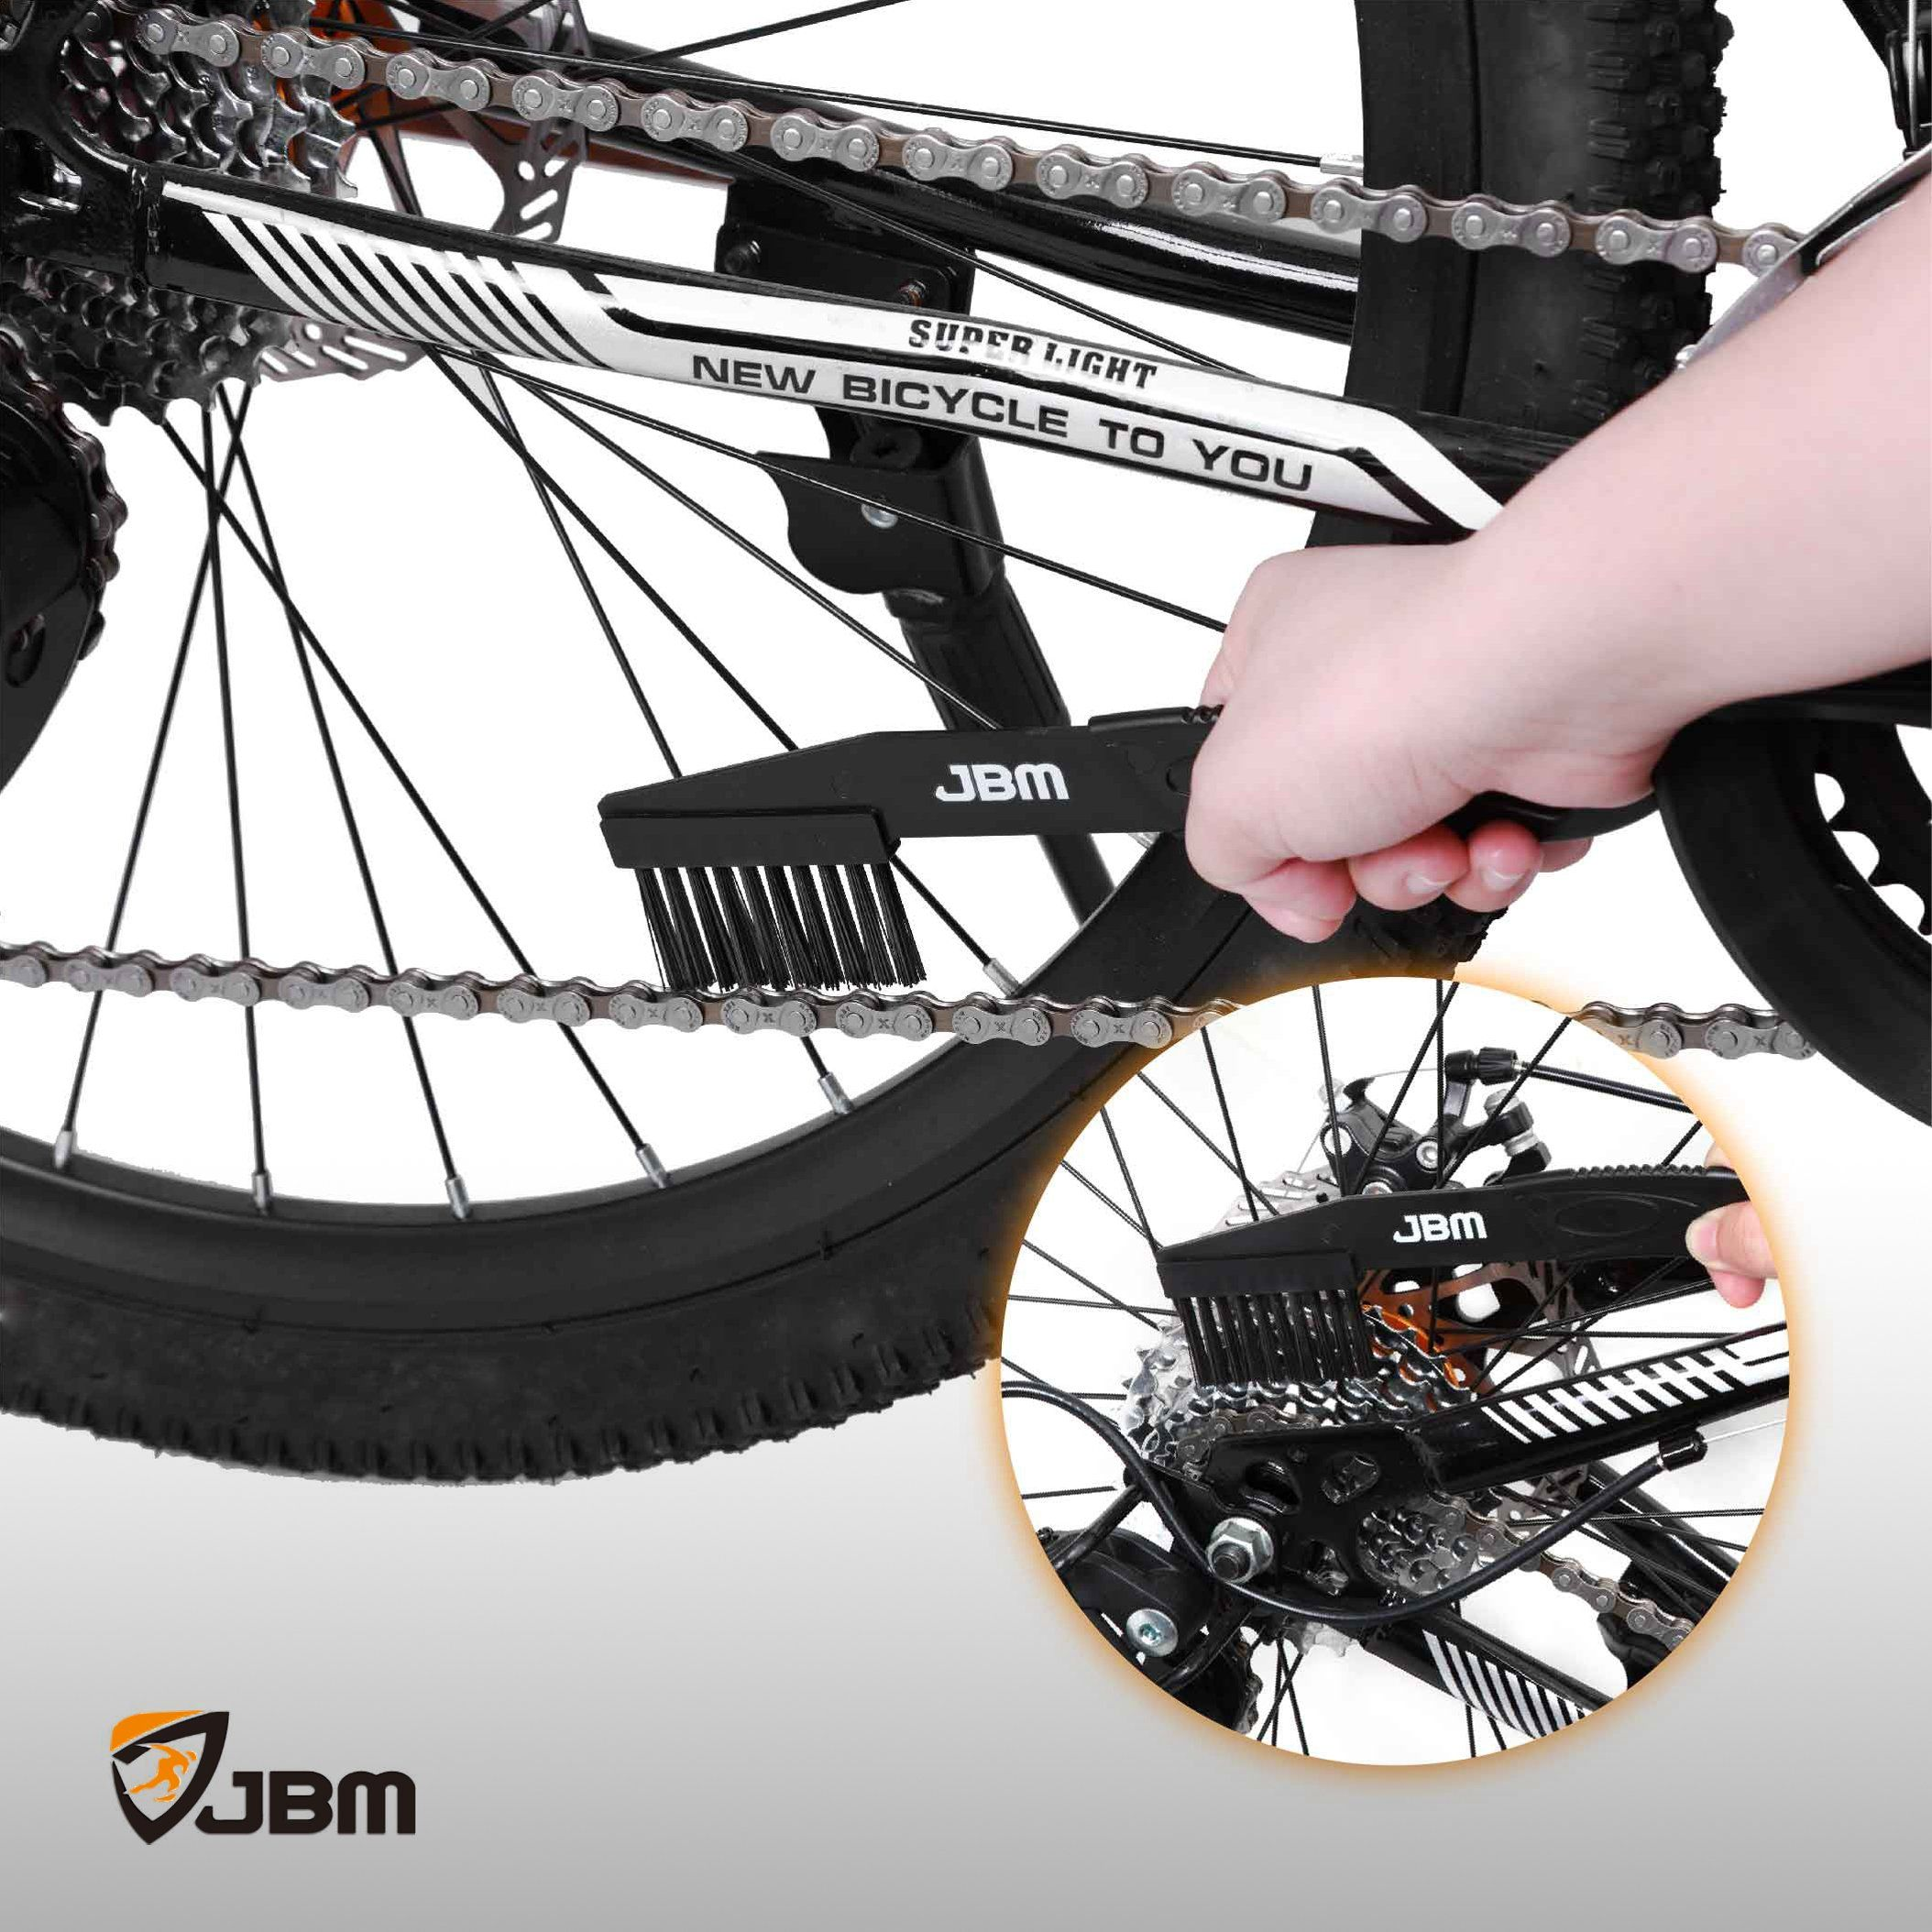 Jbm Bike Chain Cleaner Bicycle Chain Cleaning Brush Tool 3 Pieces